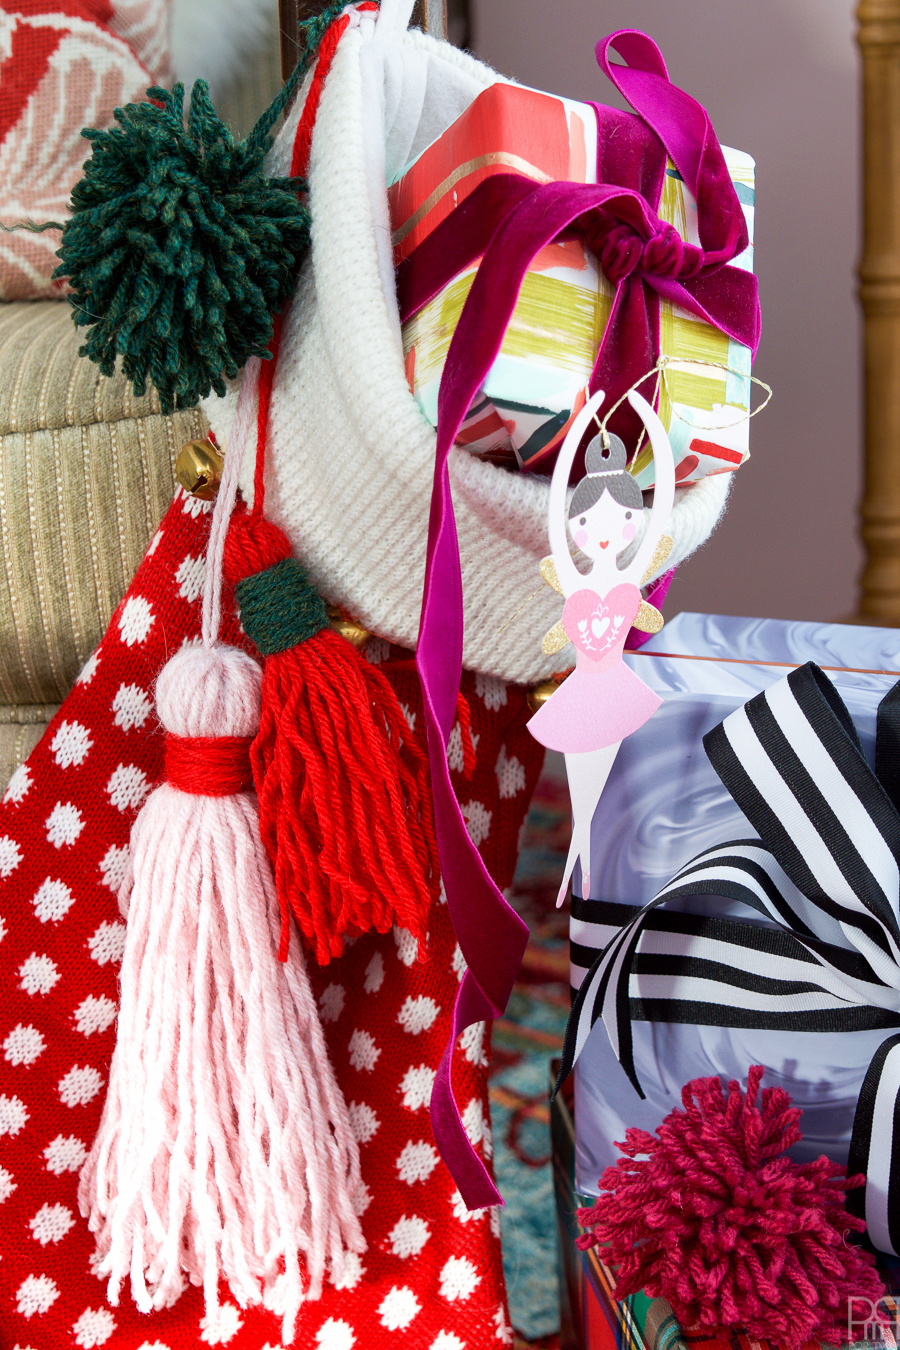 diy-pom-poms-and-tassels-11